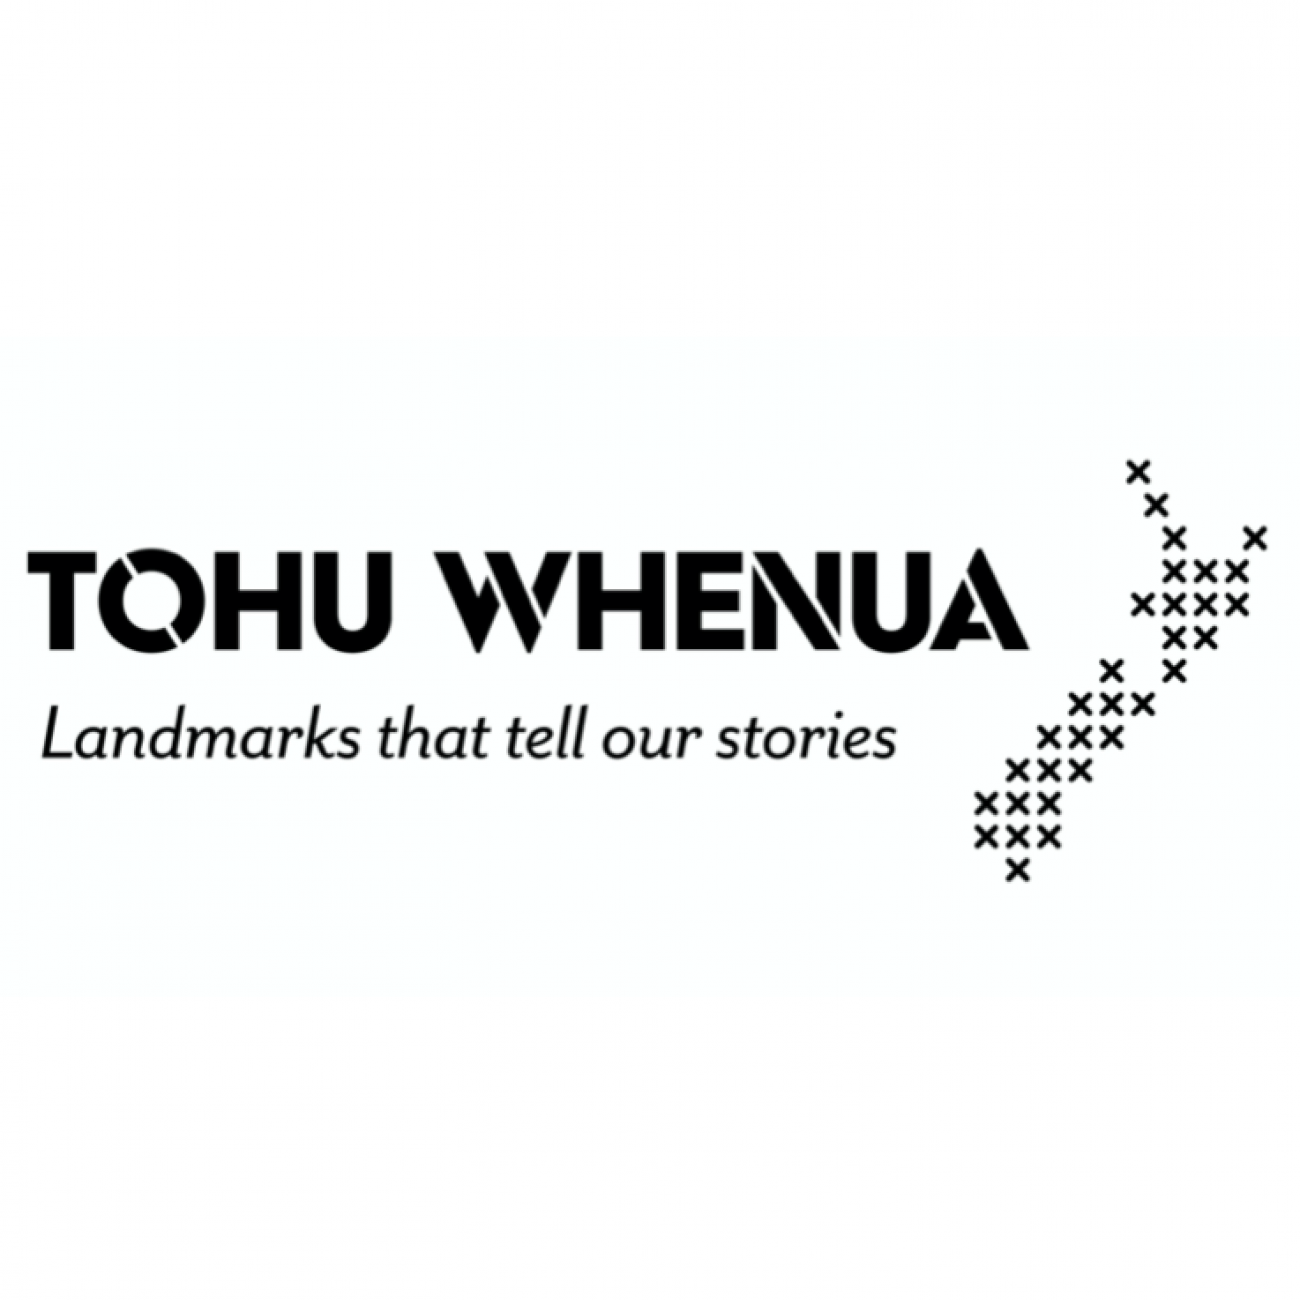 Tohu Whenua – Places that tell our stories